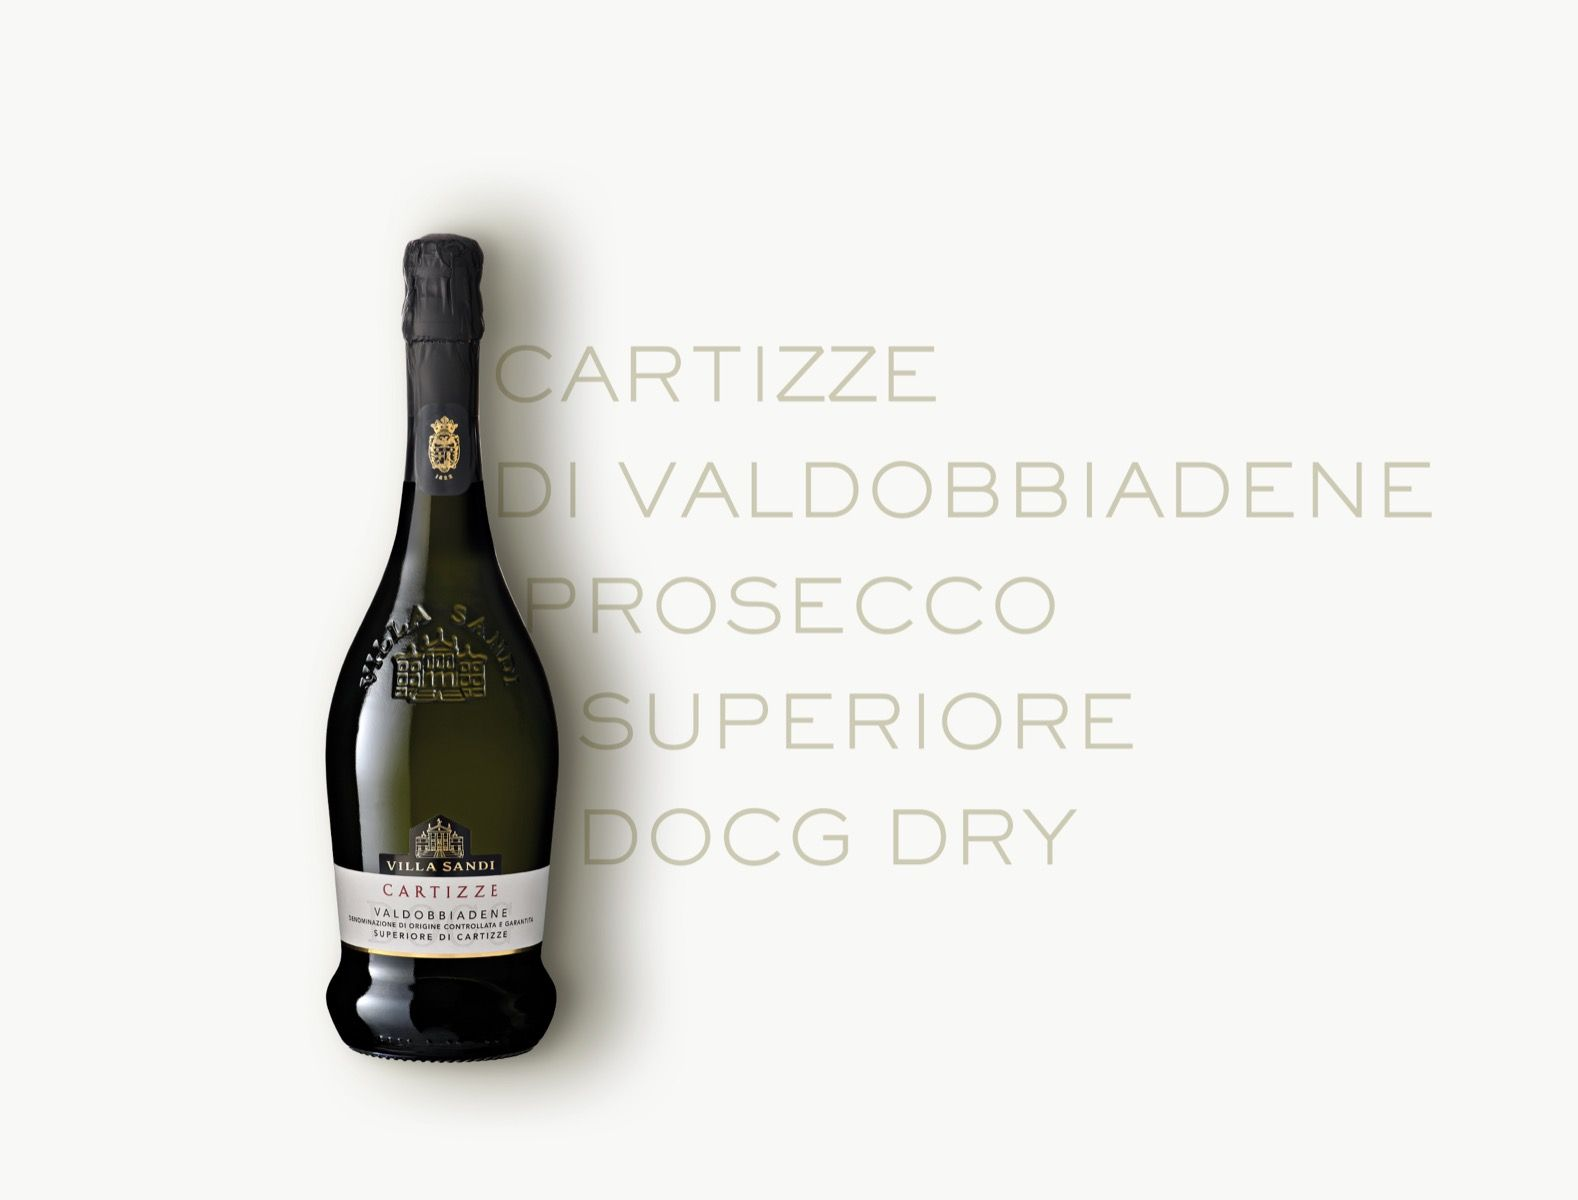 Sparkling wine produced in D.O.C.G. regions, Dry.